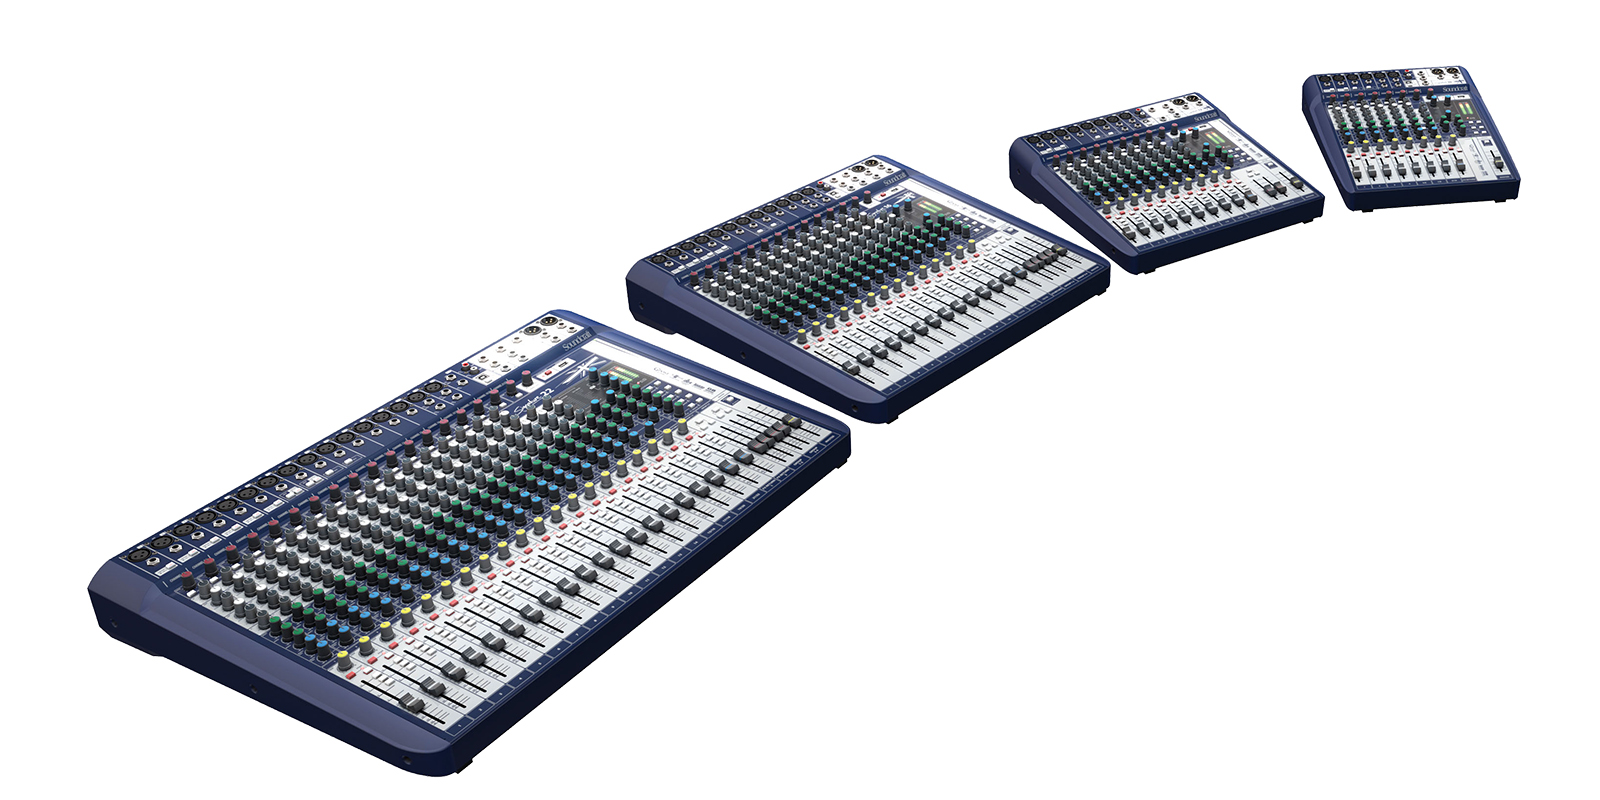 Signature 10 Soundcraft Professional Audio Mixers Stk Amplifier Scheme Compact Analogue Mixing Your Sound